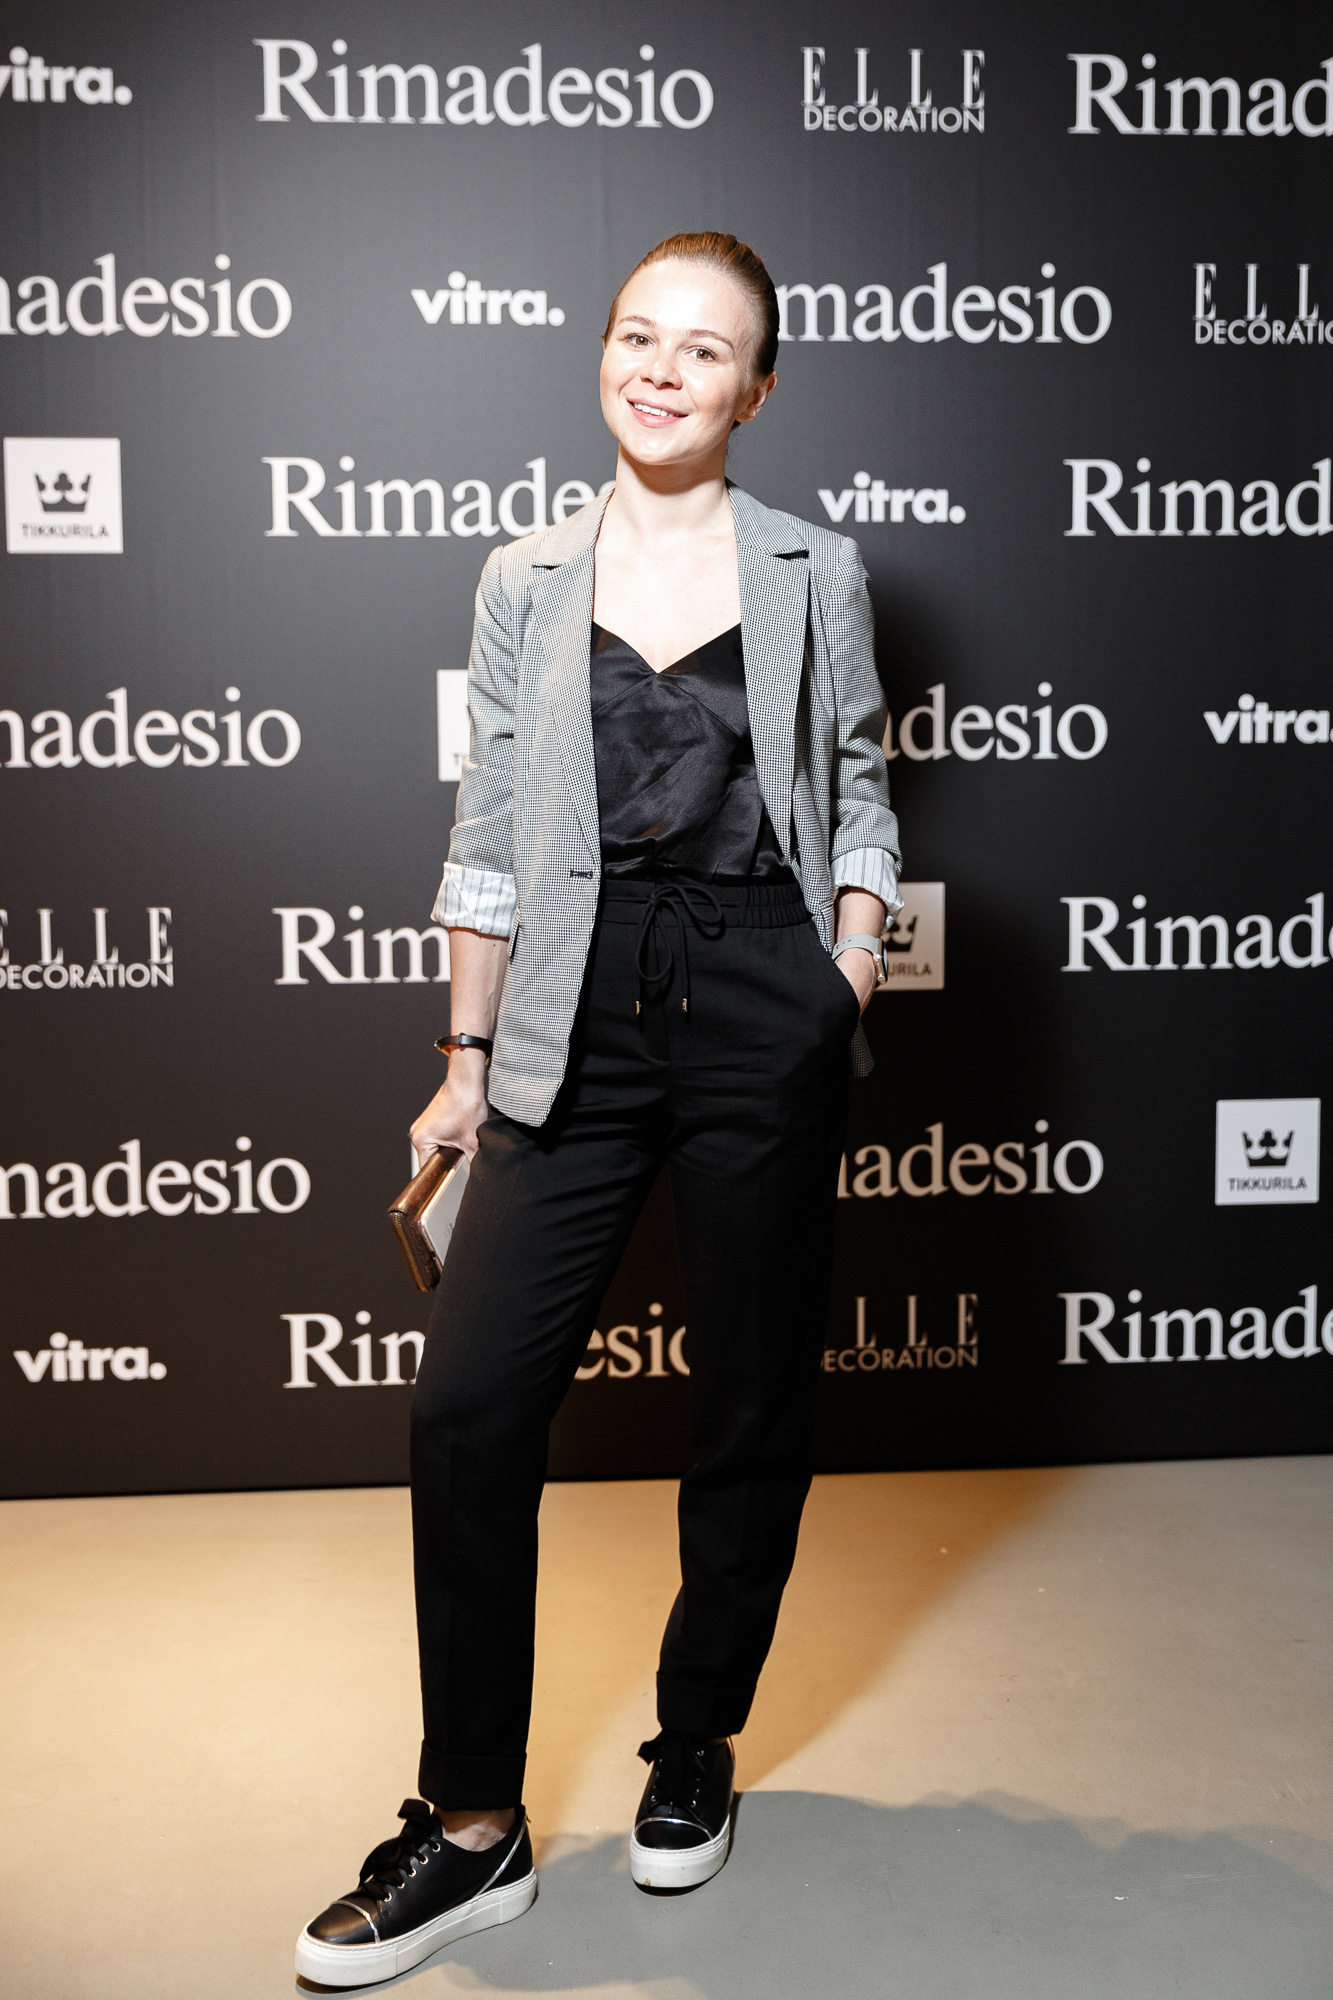 rimadesio-moscow-159